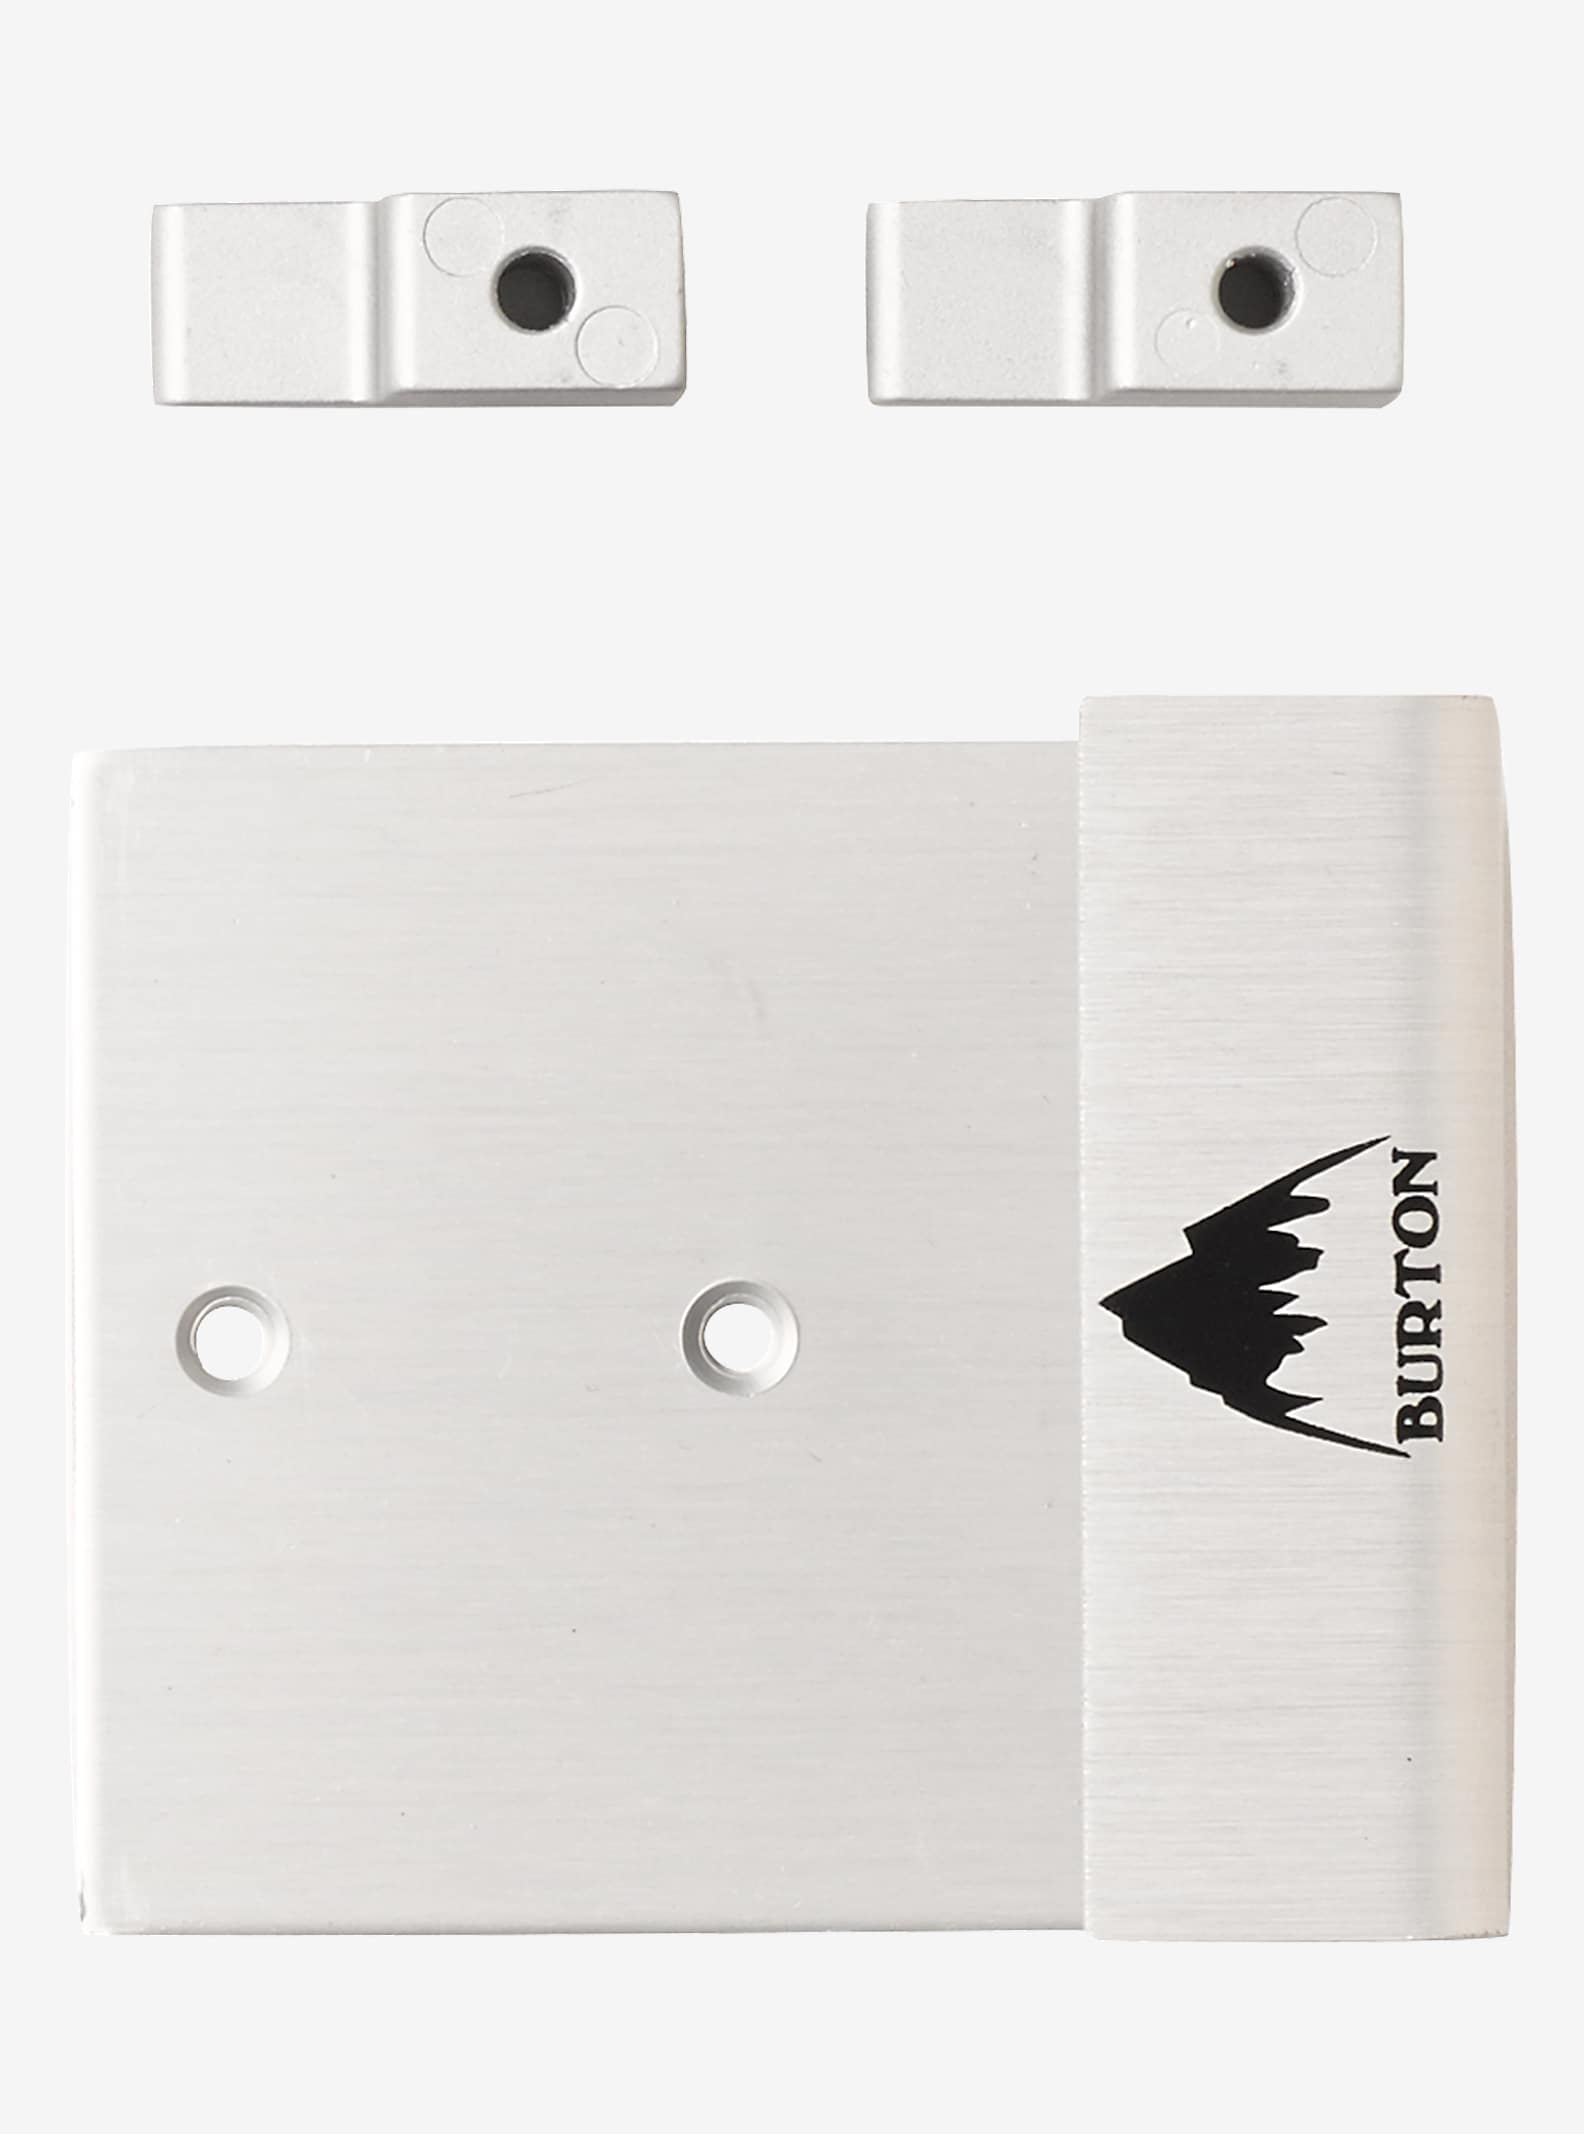 Burton Collector's Edition Board Wall Mounts shown in Silver